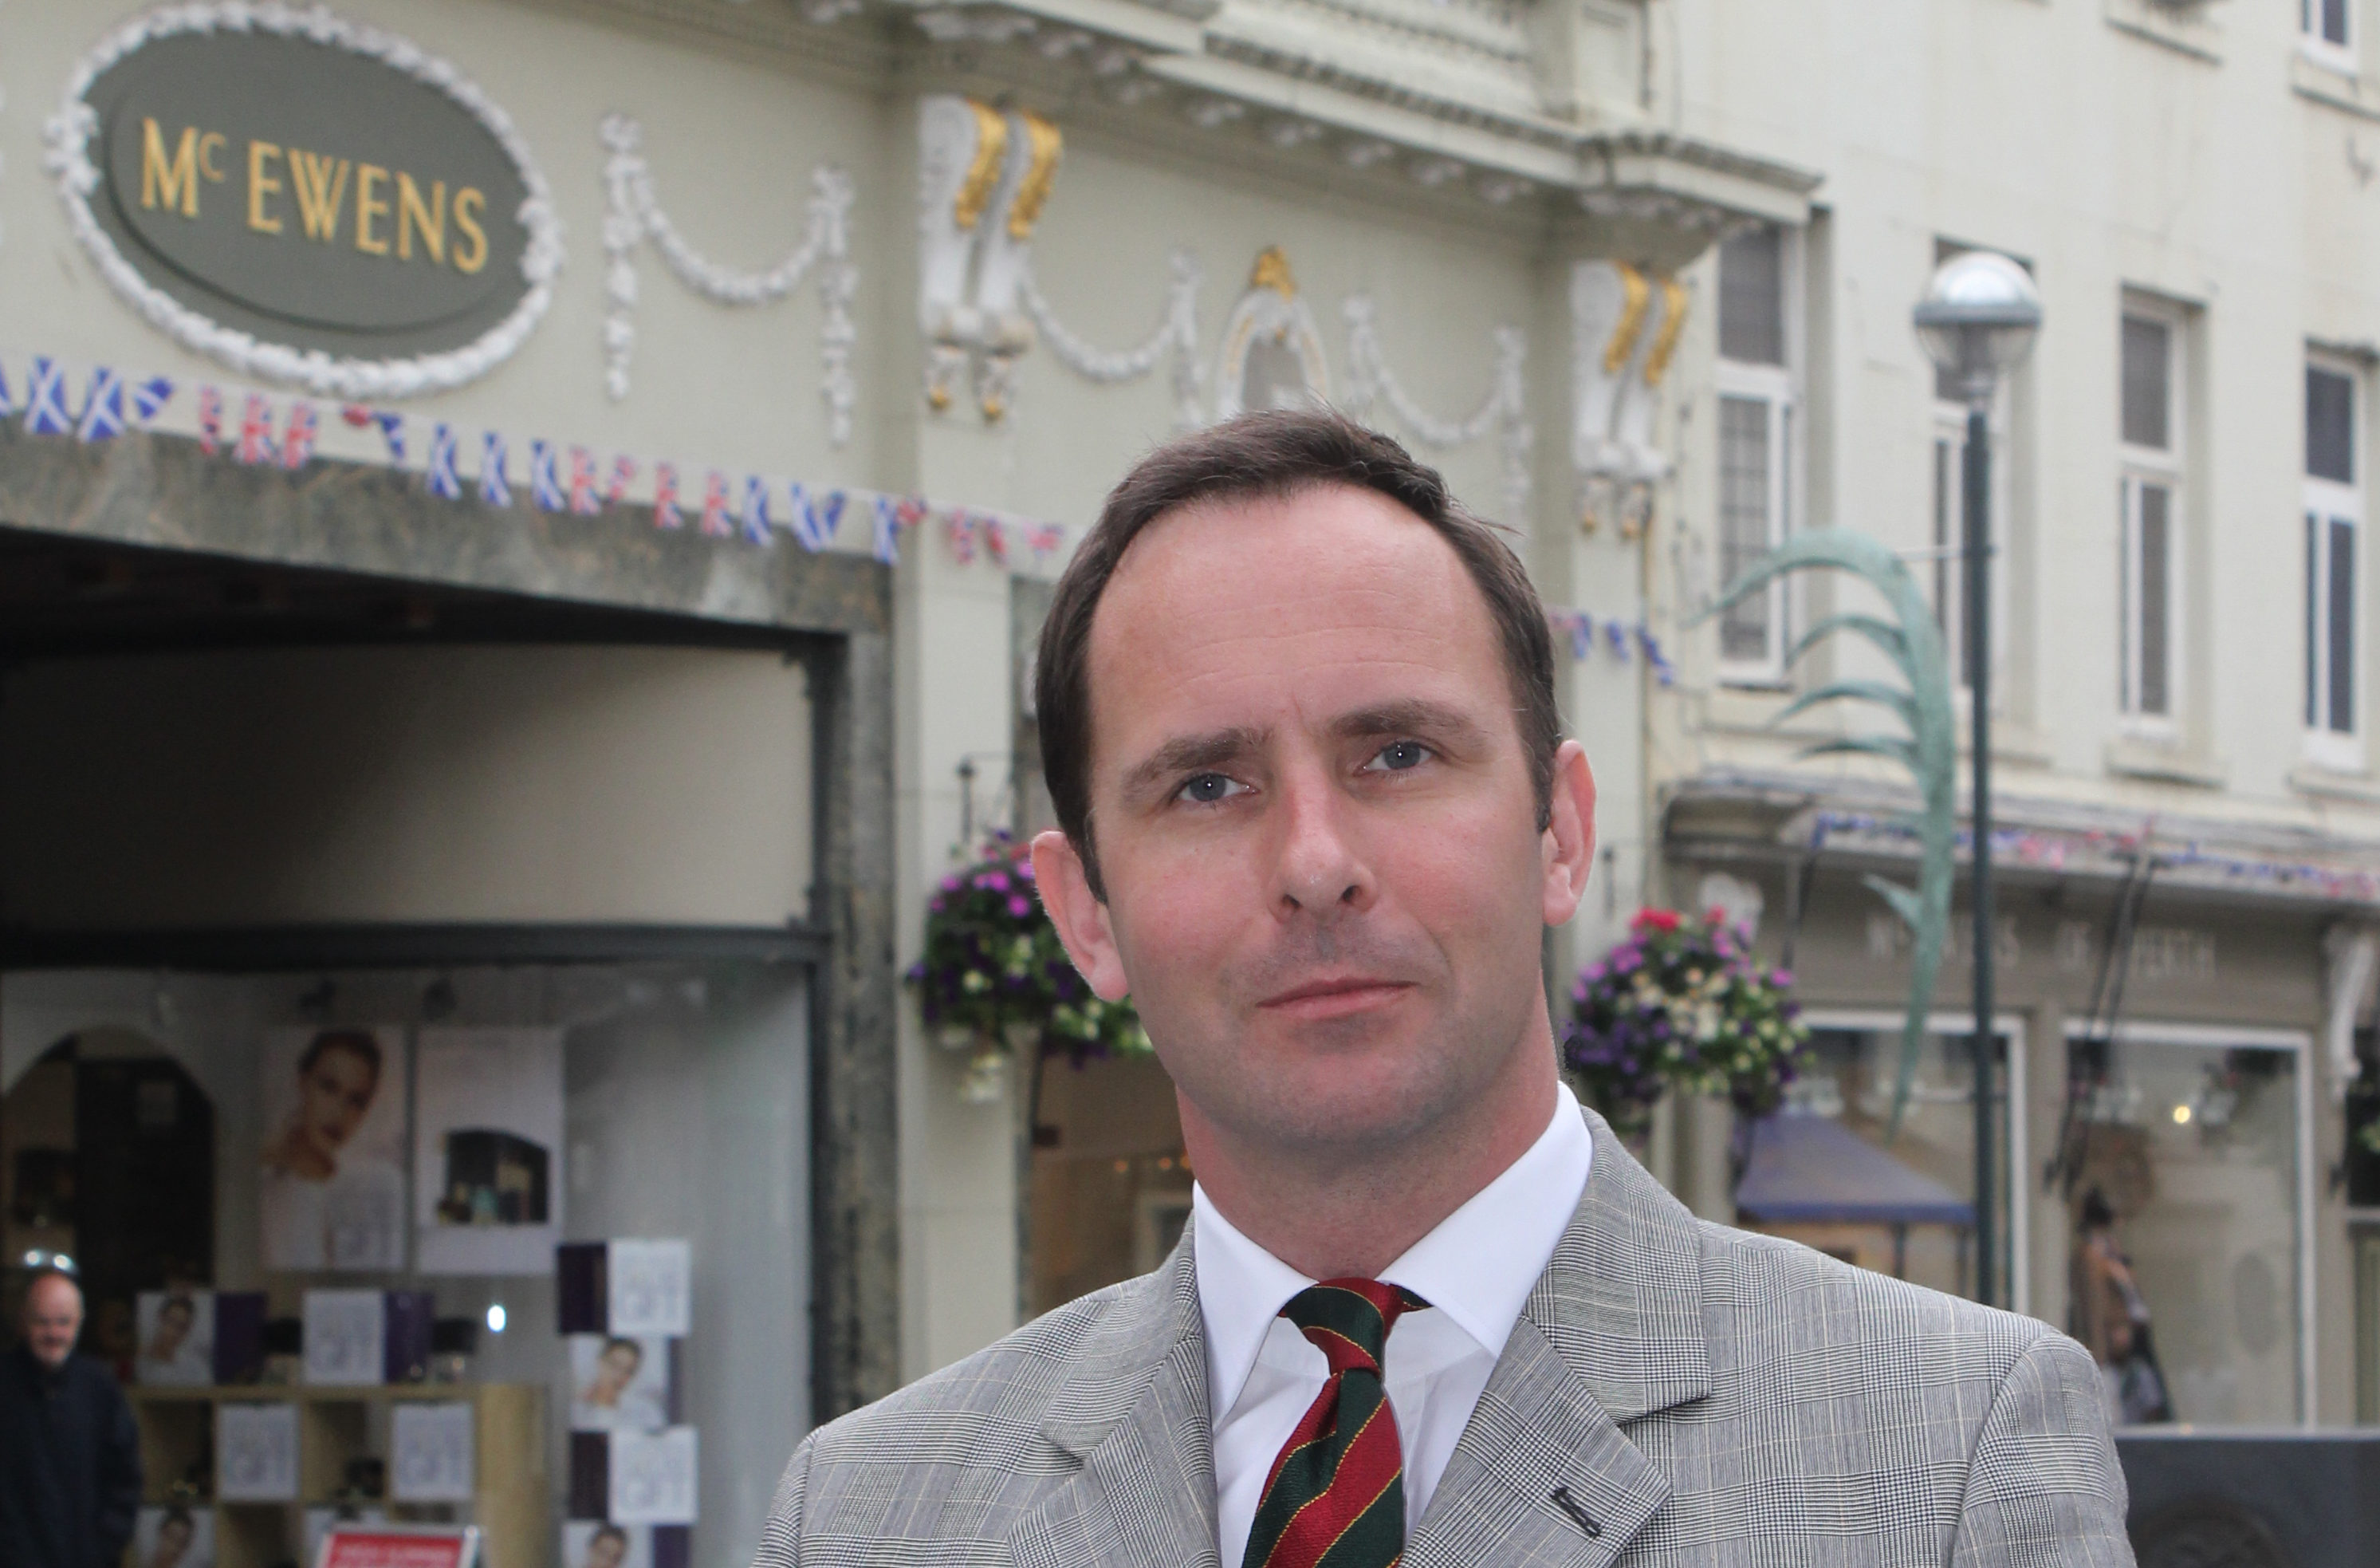 John Bullough of McEwens of Perth outside the family-owned department store in Perth before it was forced to close in 2016